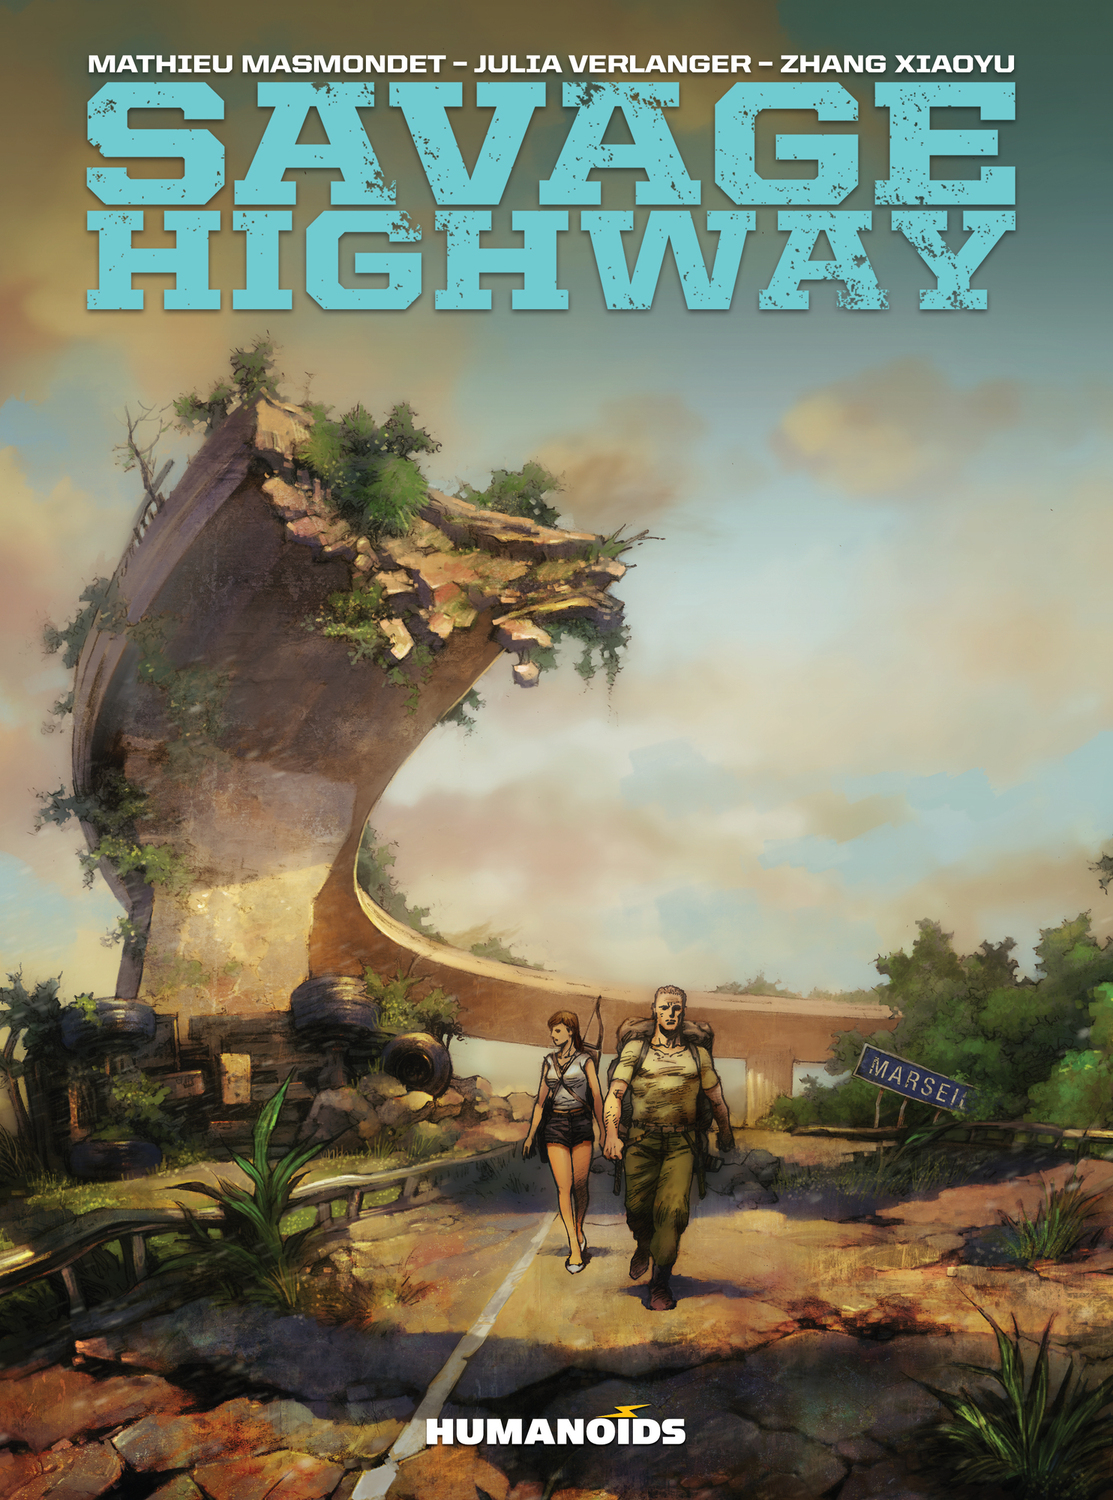 Savage Highway - Hardcover Trade